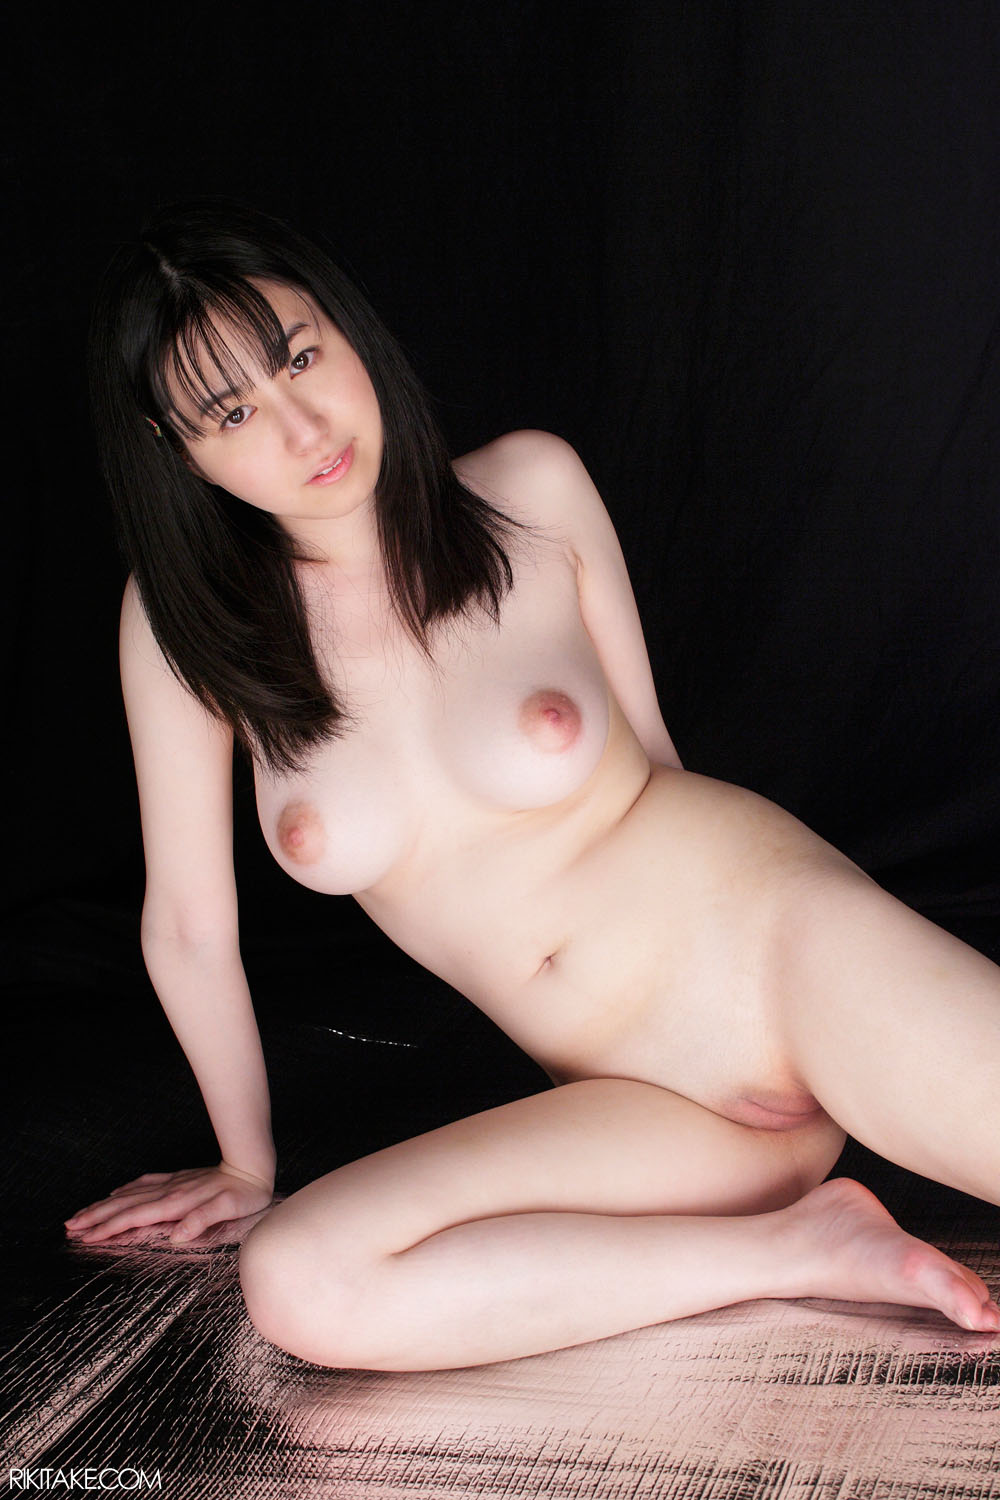 Naughty nude japanese girl not agree